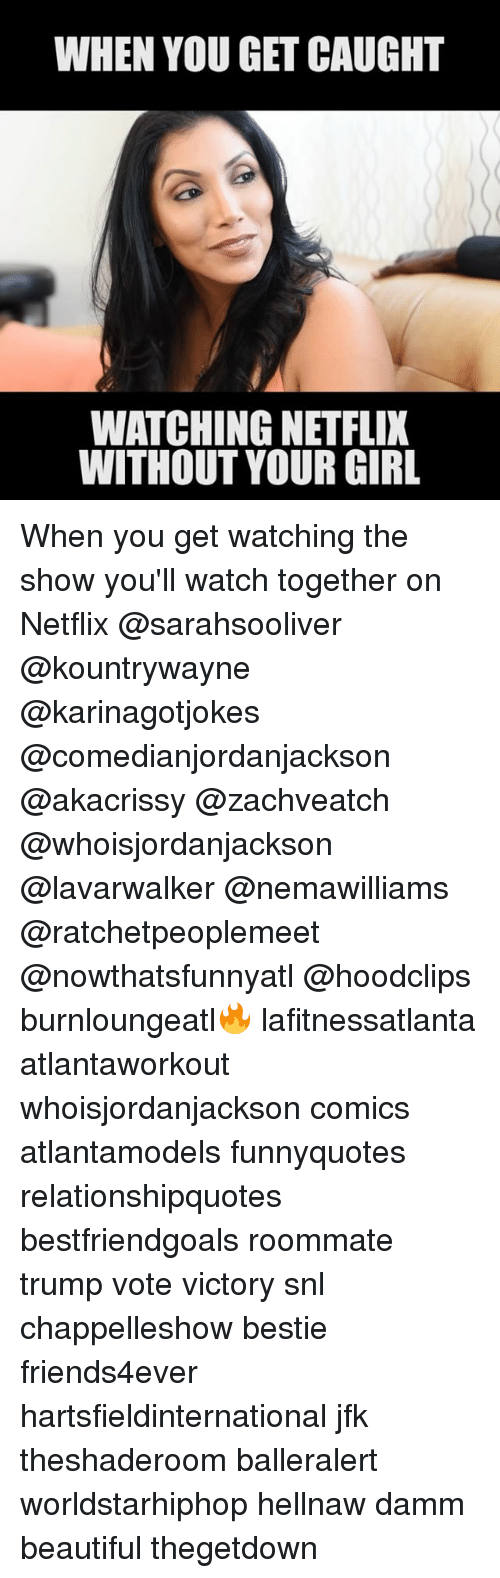 Trump Vote: WHEN YOU GET CAUGHT  WATCHING NETFLIX  WITHOUT YOUR GIRL When you get watching the show you'll watch together on Netflix @sarahsooliver @kountrywayne @karinagotjokes @comedianjordanjackson @akacrissy @zachveatch @whoisjordanjackson @lavarwalker @nemawilliams @ratchetpeoplemeet @nowthatsfunnyatl @hoodclips burnloungeatl🔥 lafitnessatlanta atlantaworkout whoisjordanjackson comics atlantamodels funnyquotes relationshipquotes bestfriendgoals roommate trump vote victory snl chappelleshow bestie friends4ever hartsfieldinternational jfk theshaderoom balleralert worldstarhiphop hellnaw damm beautiful thegetdown